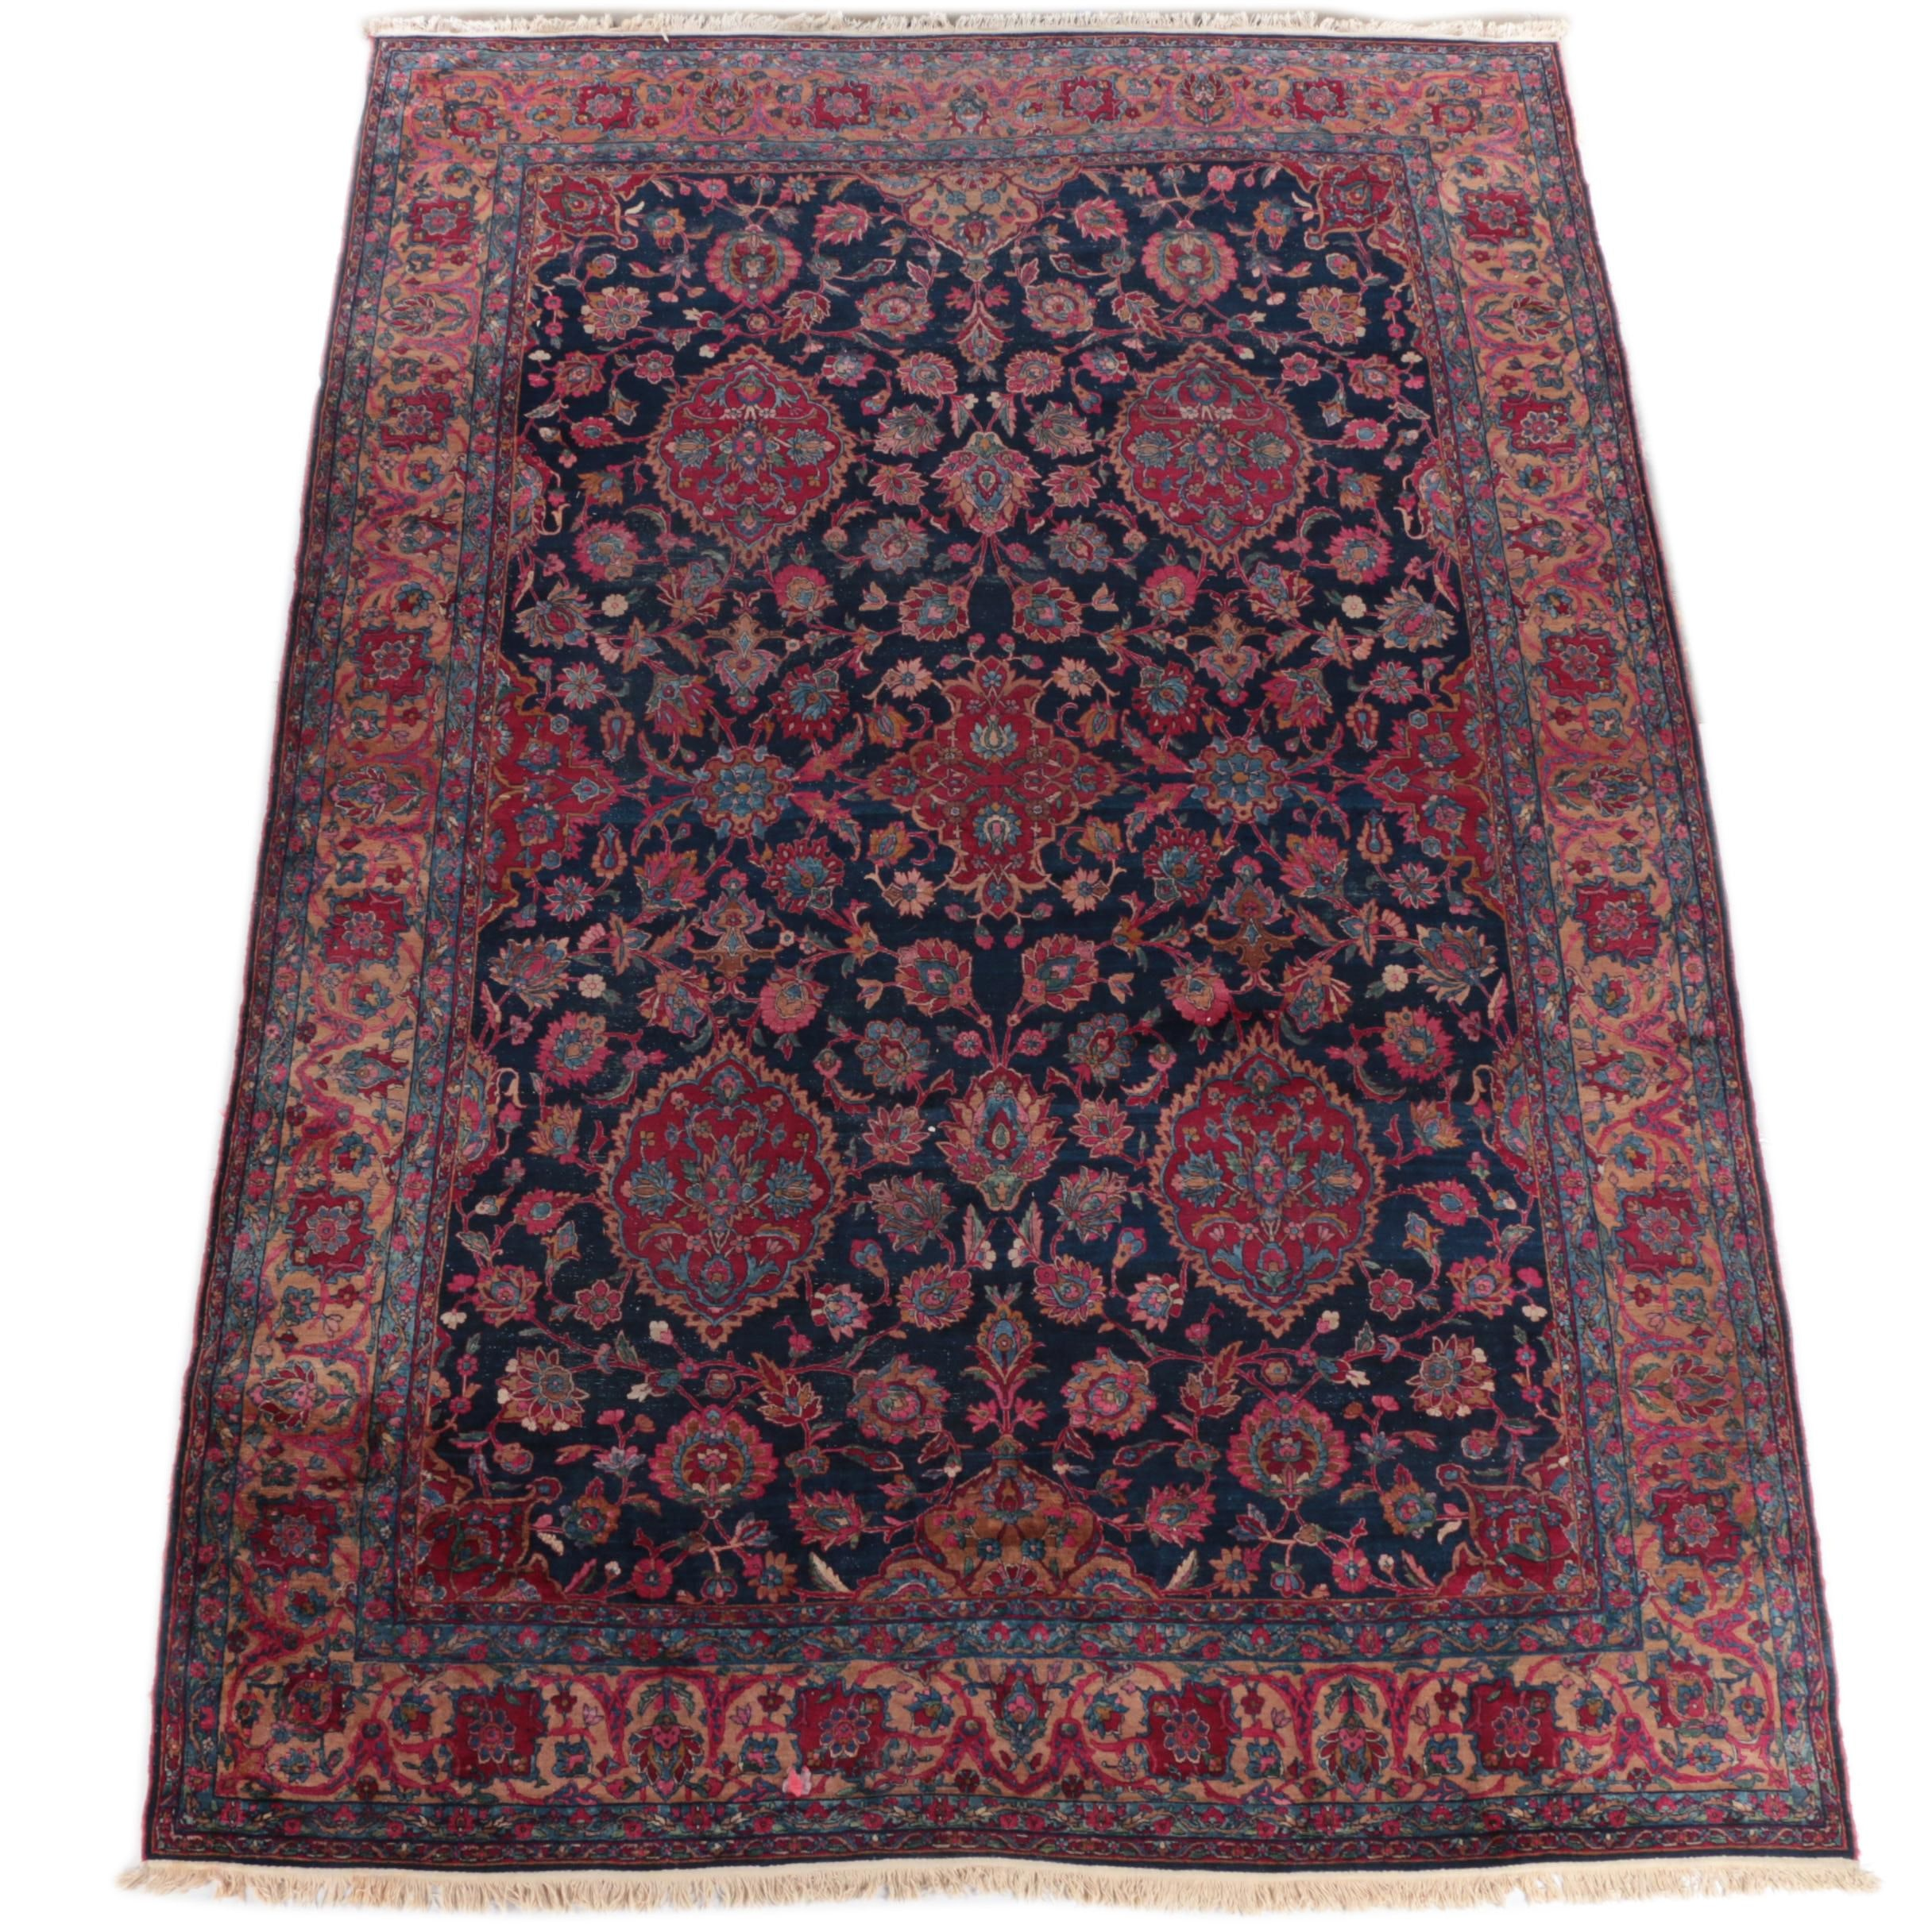 Large Antique Hand-Knotted Persian Area Rug